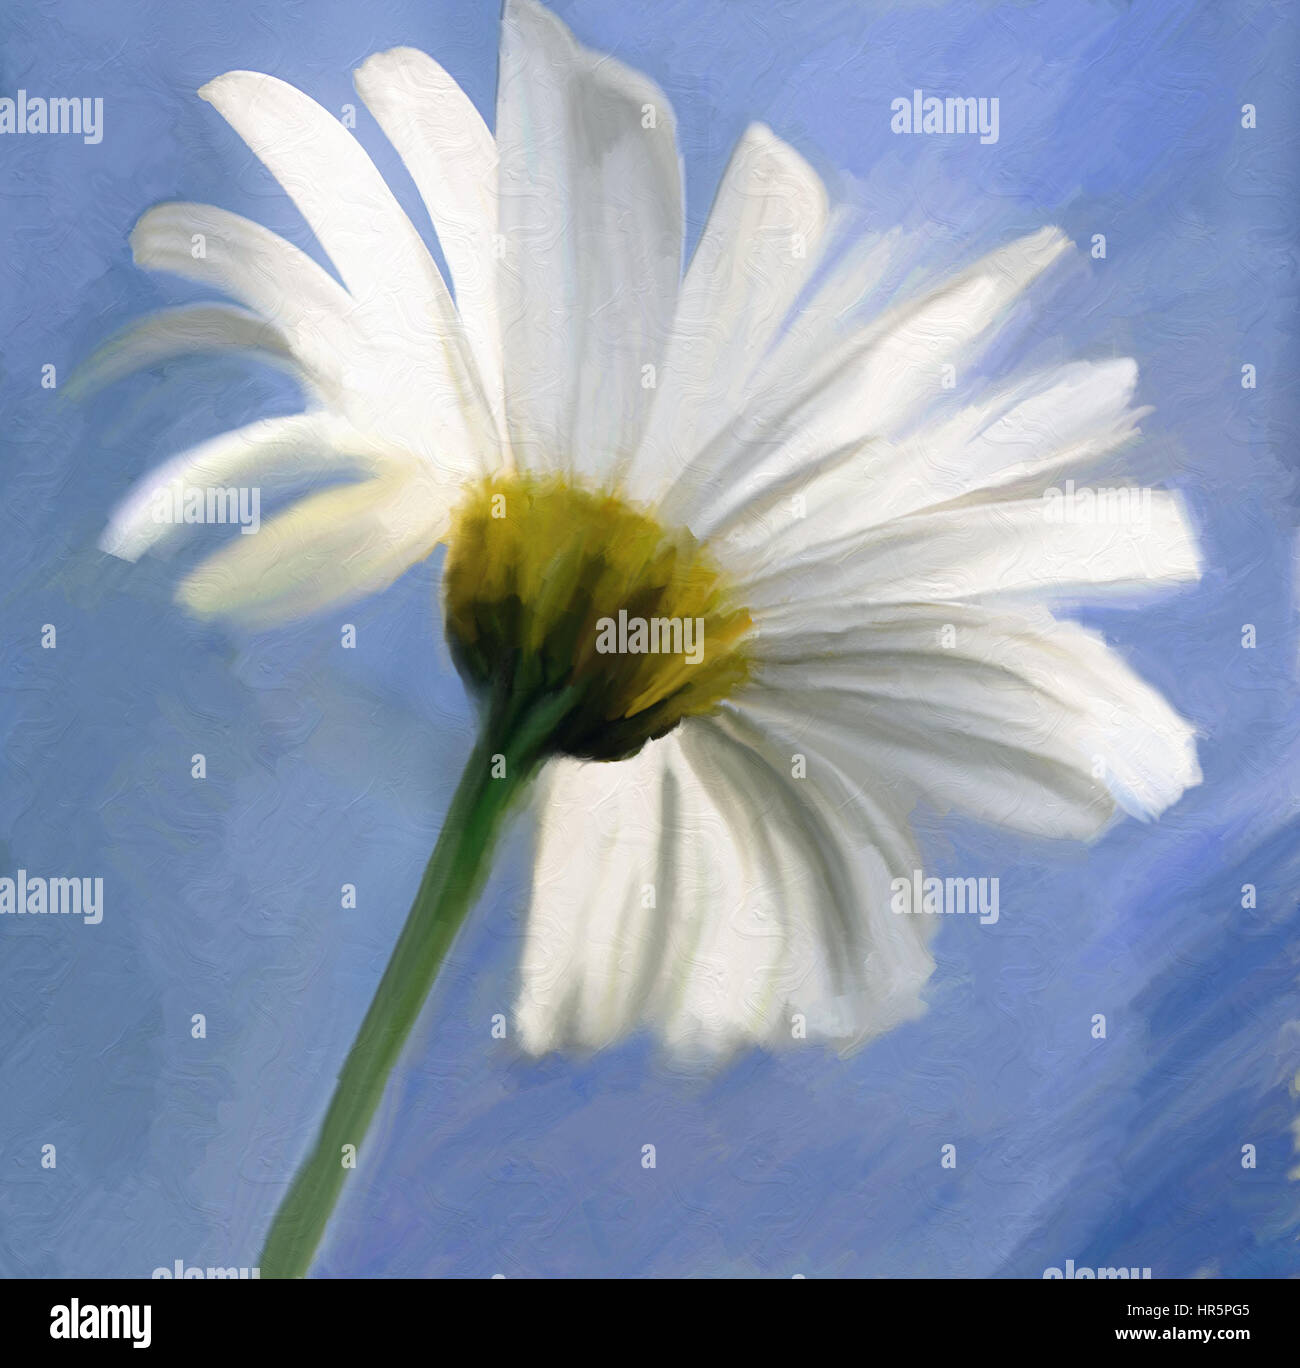 Watercolor oil paint of daisy white flower over the blue sky stock watercolor oil paint of daisy white flower over the blue sky izmirmasajfo Choice Image